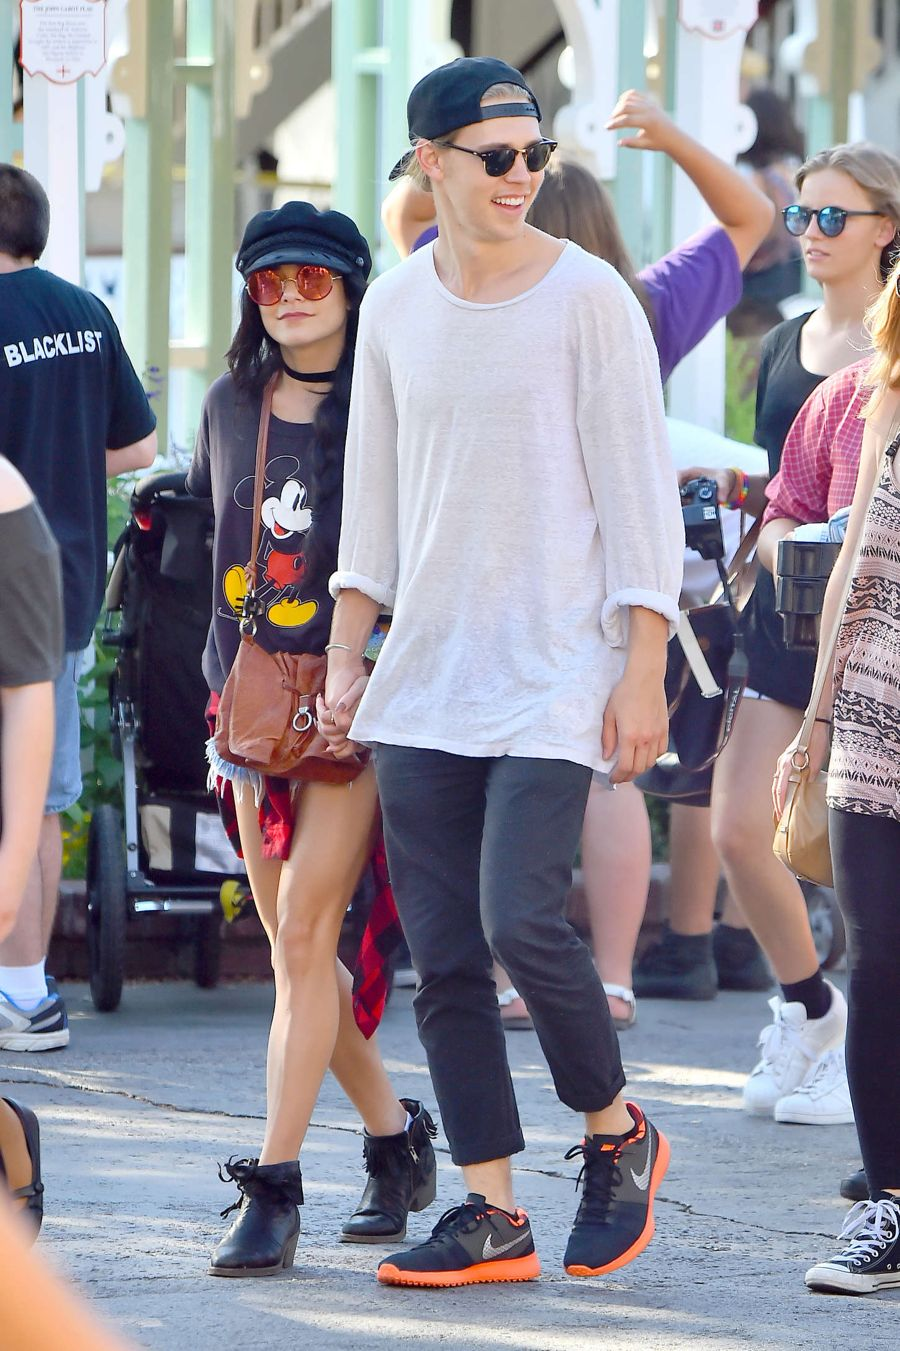 Vanessa Hudgens on Boyfriend's Bday at Disneyland